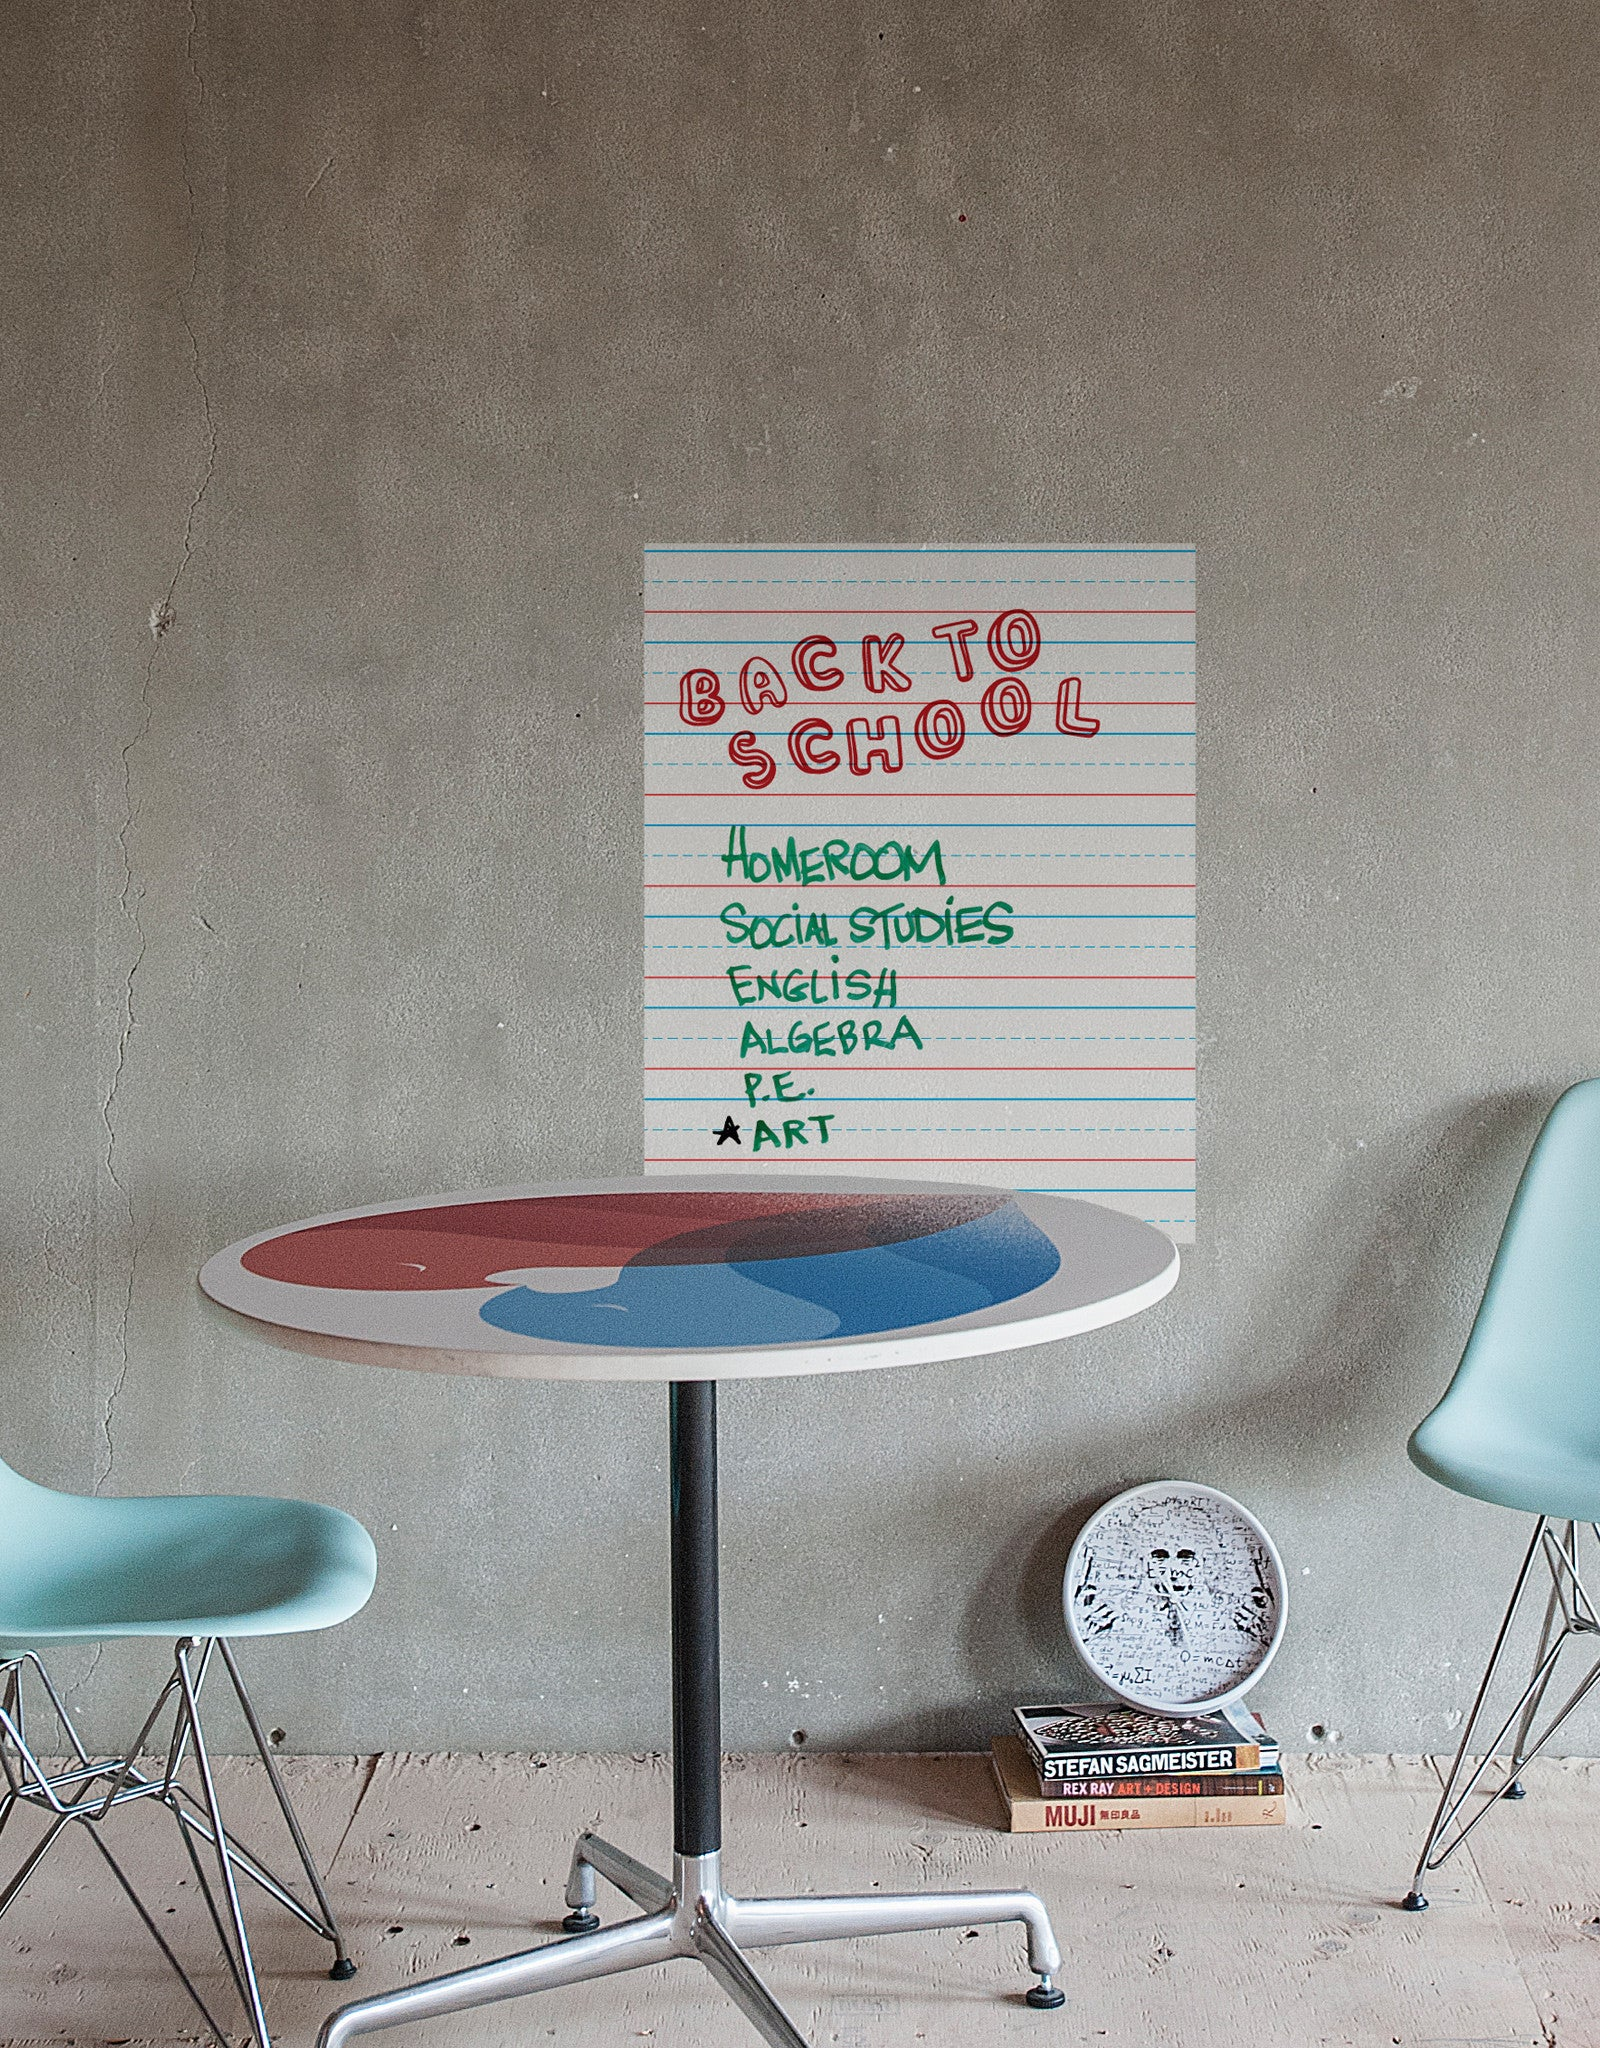 Writing Paper Dry Erase · Writing Paper Dry Erase & Writing Paper Dry Erase Wall Decal u2013 Blik